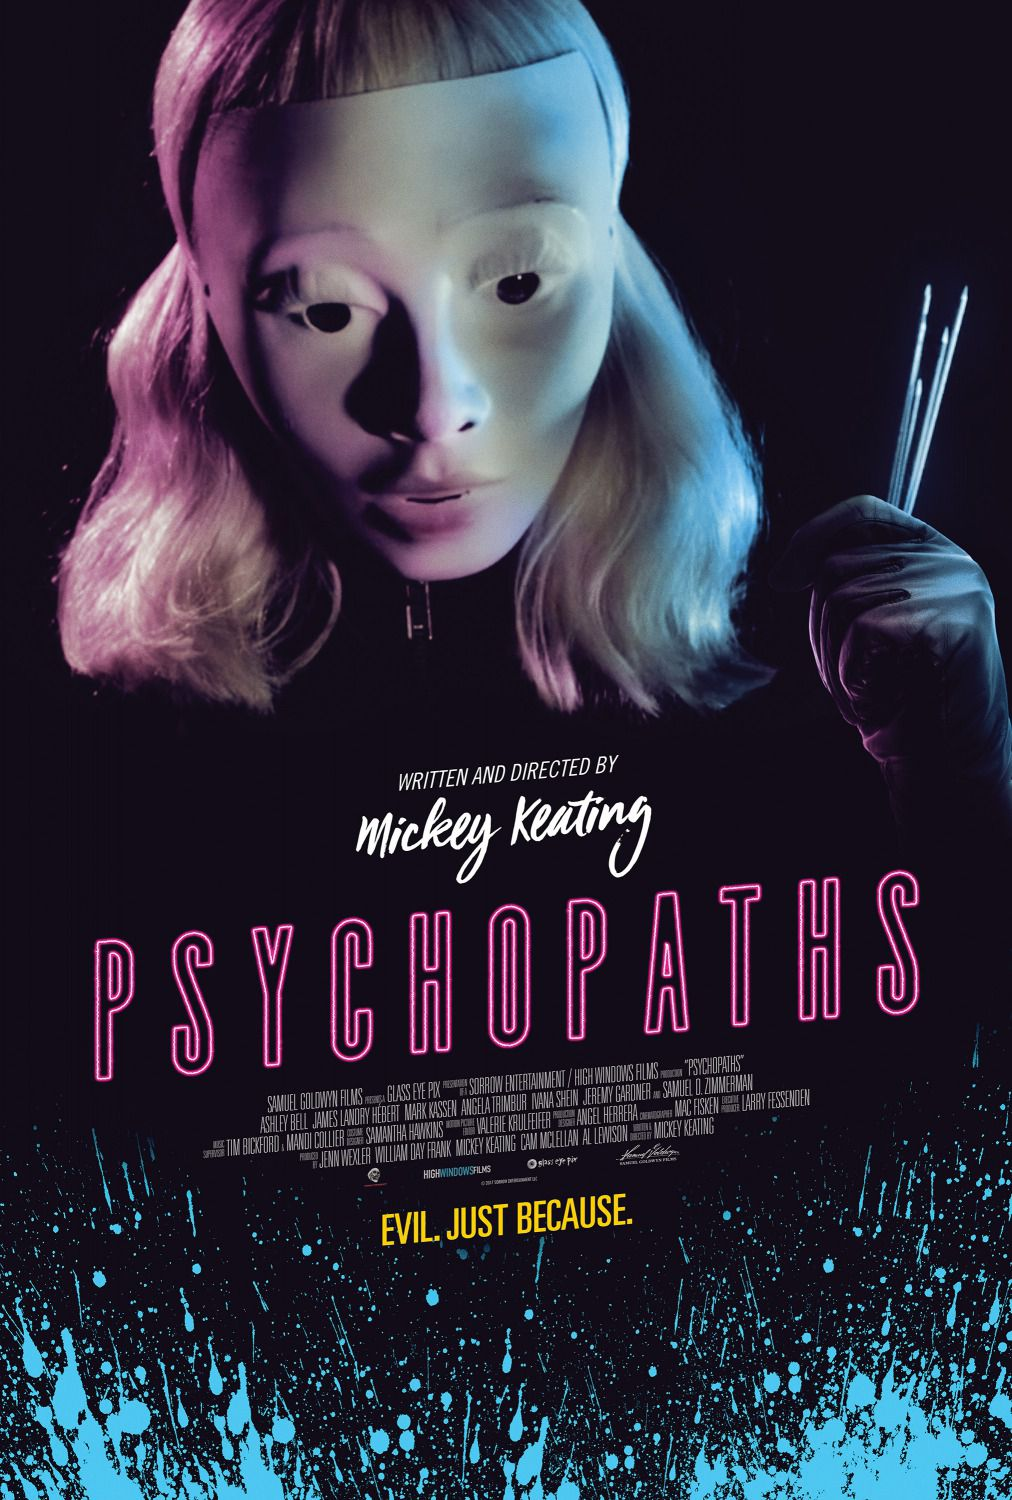 Psychopaths - Jeff Daniel Phillips - Ashley Bell - Angela Trimbur - James Landry - horror film poster - Evil, just Because